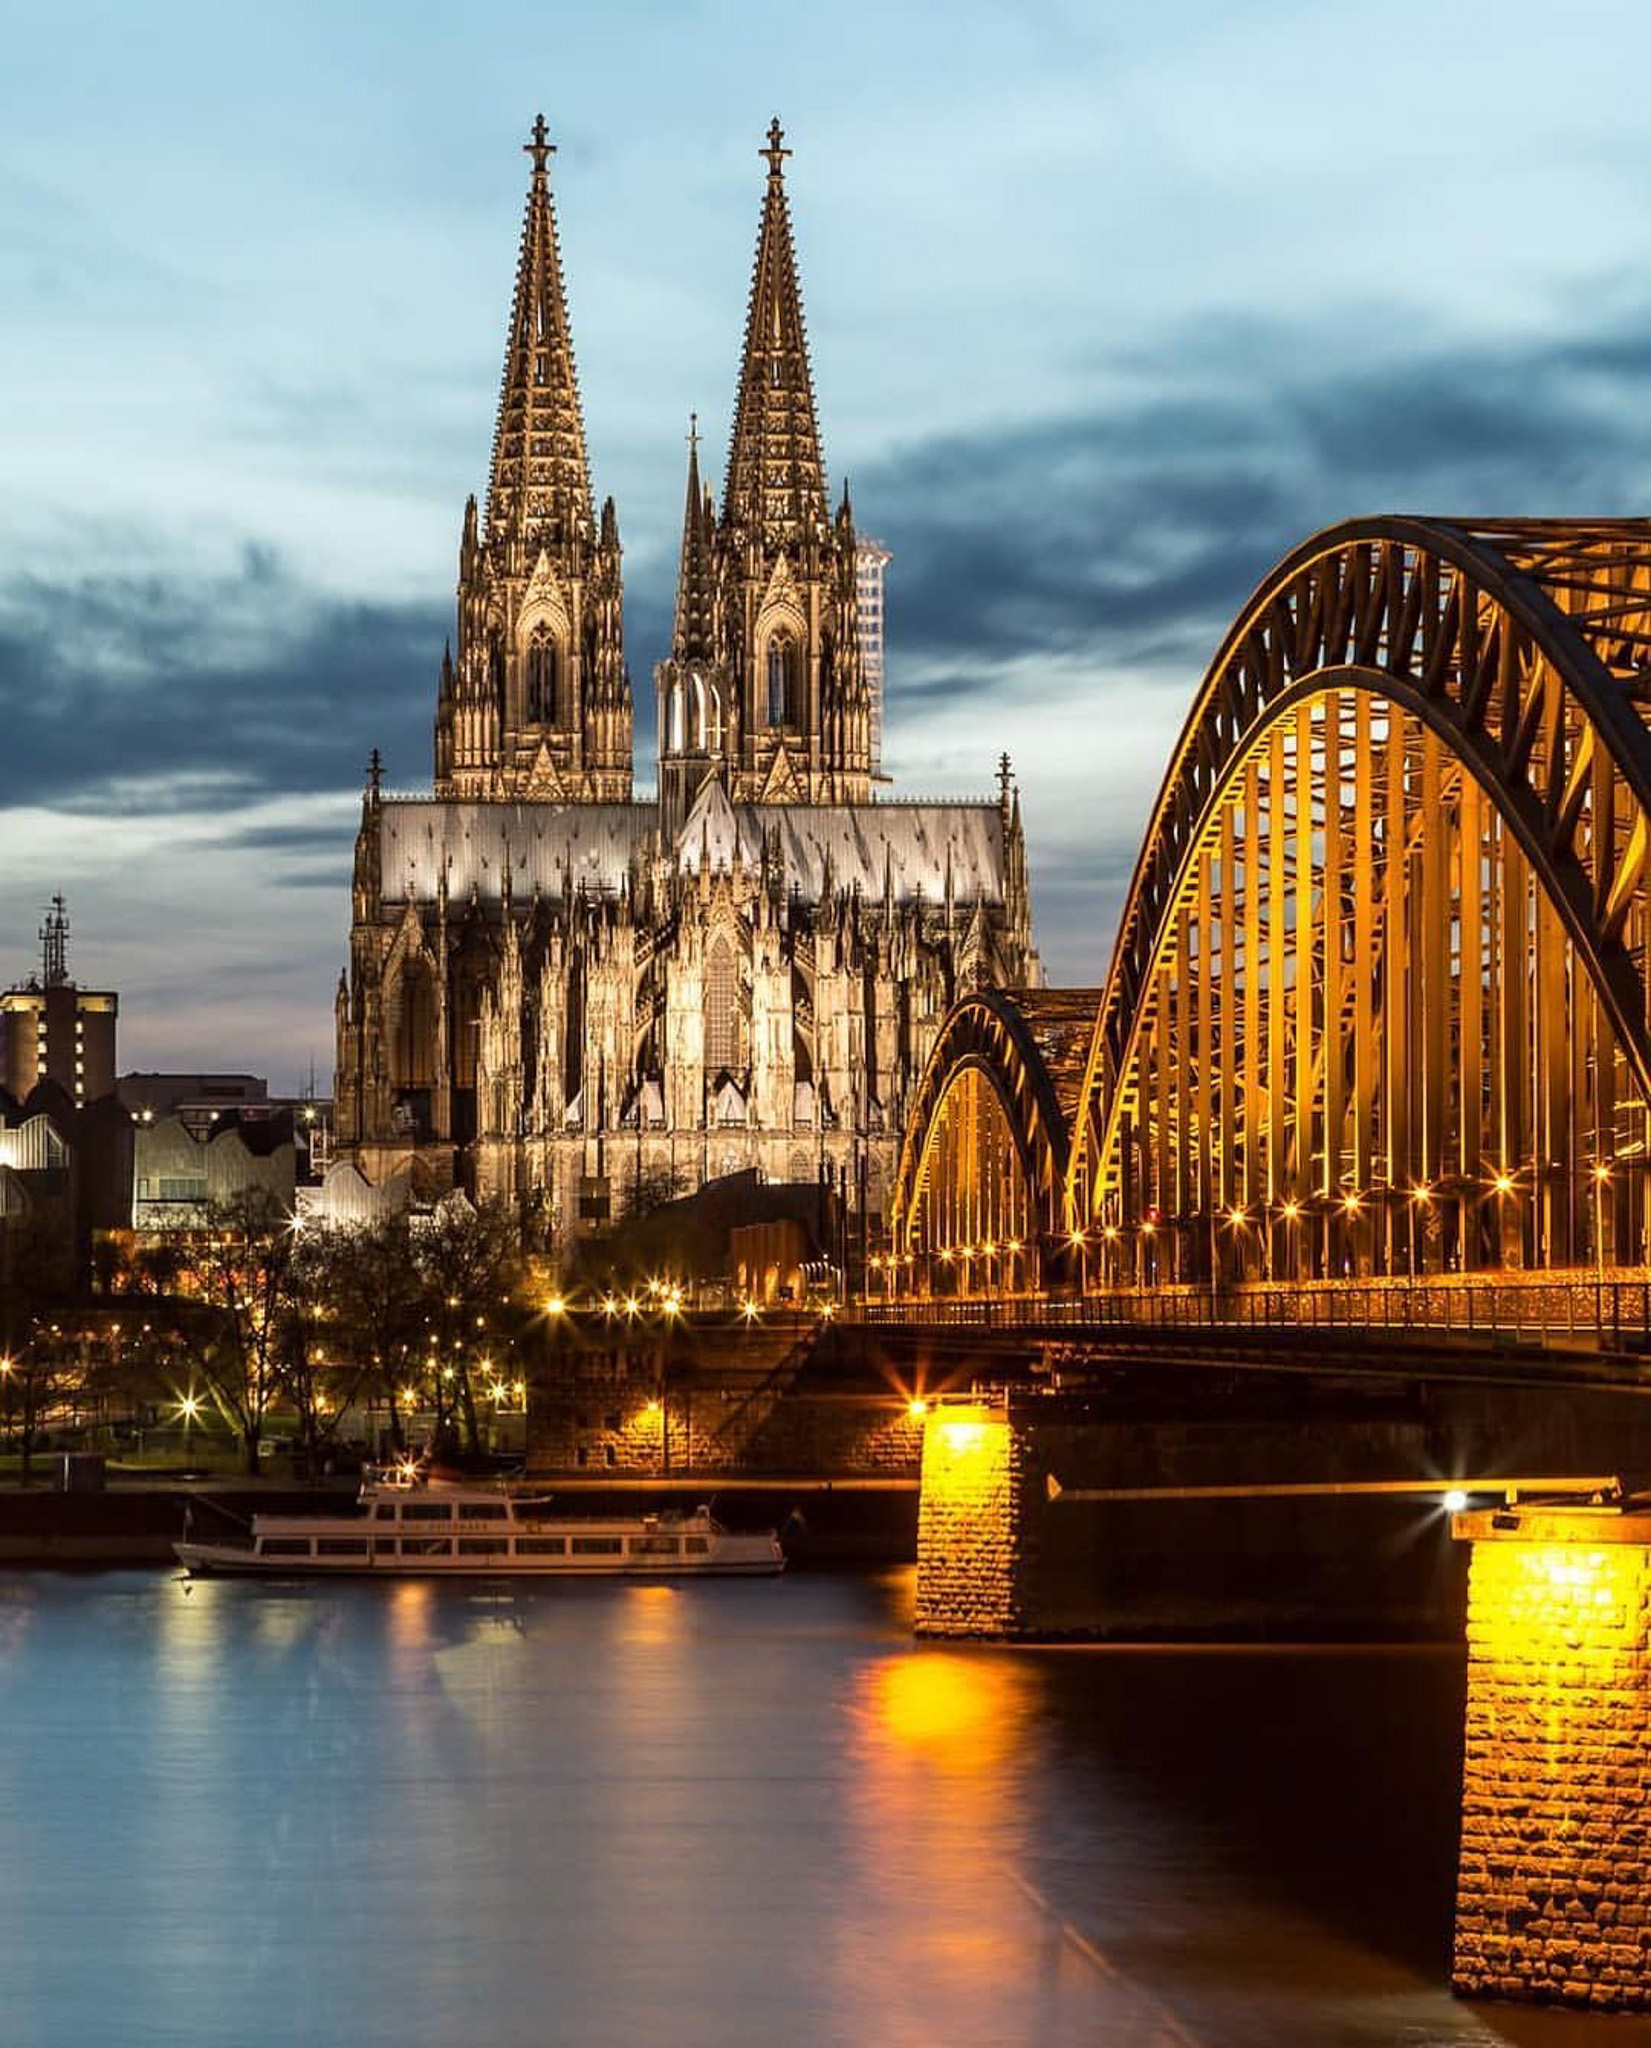 Cologne Cathedral, Cologne North Rhine-Westphalia Germany - Body of water, Bridge, Building, Cityscape, Cloud, Dusk, Lake, Nature, Sky, Tower, Water